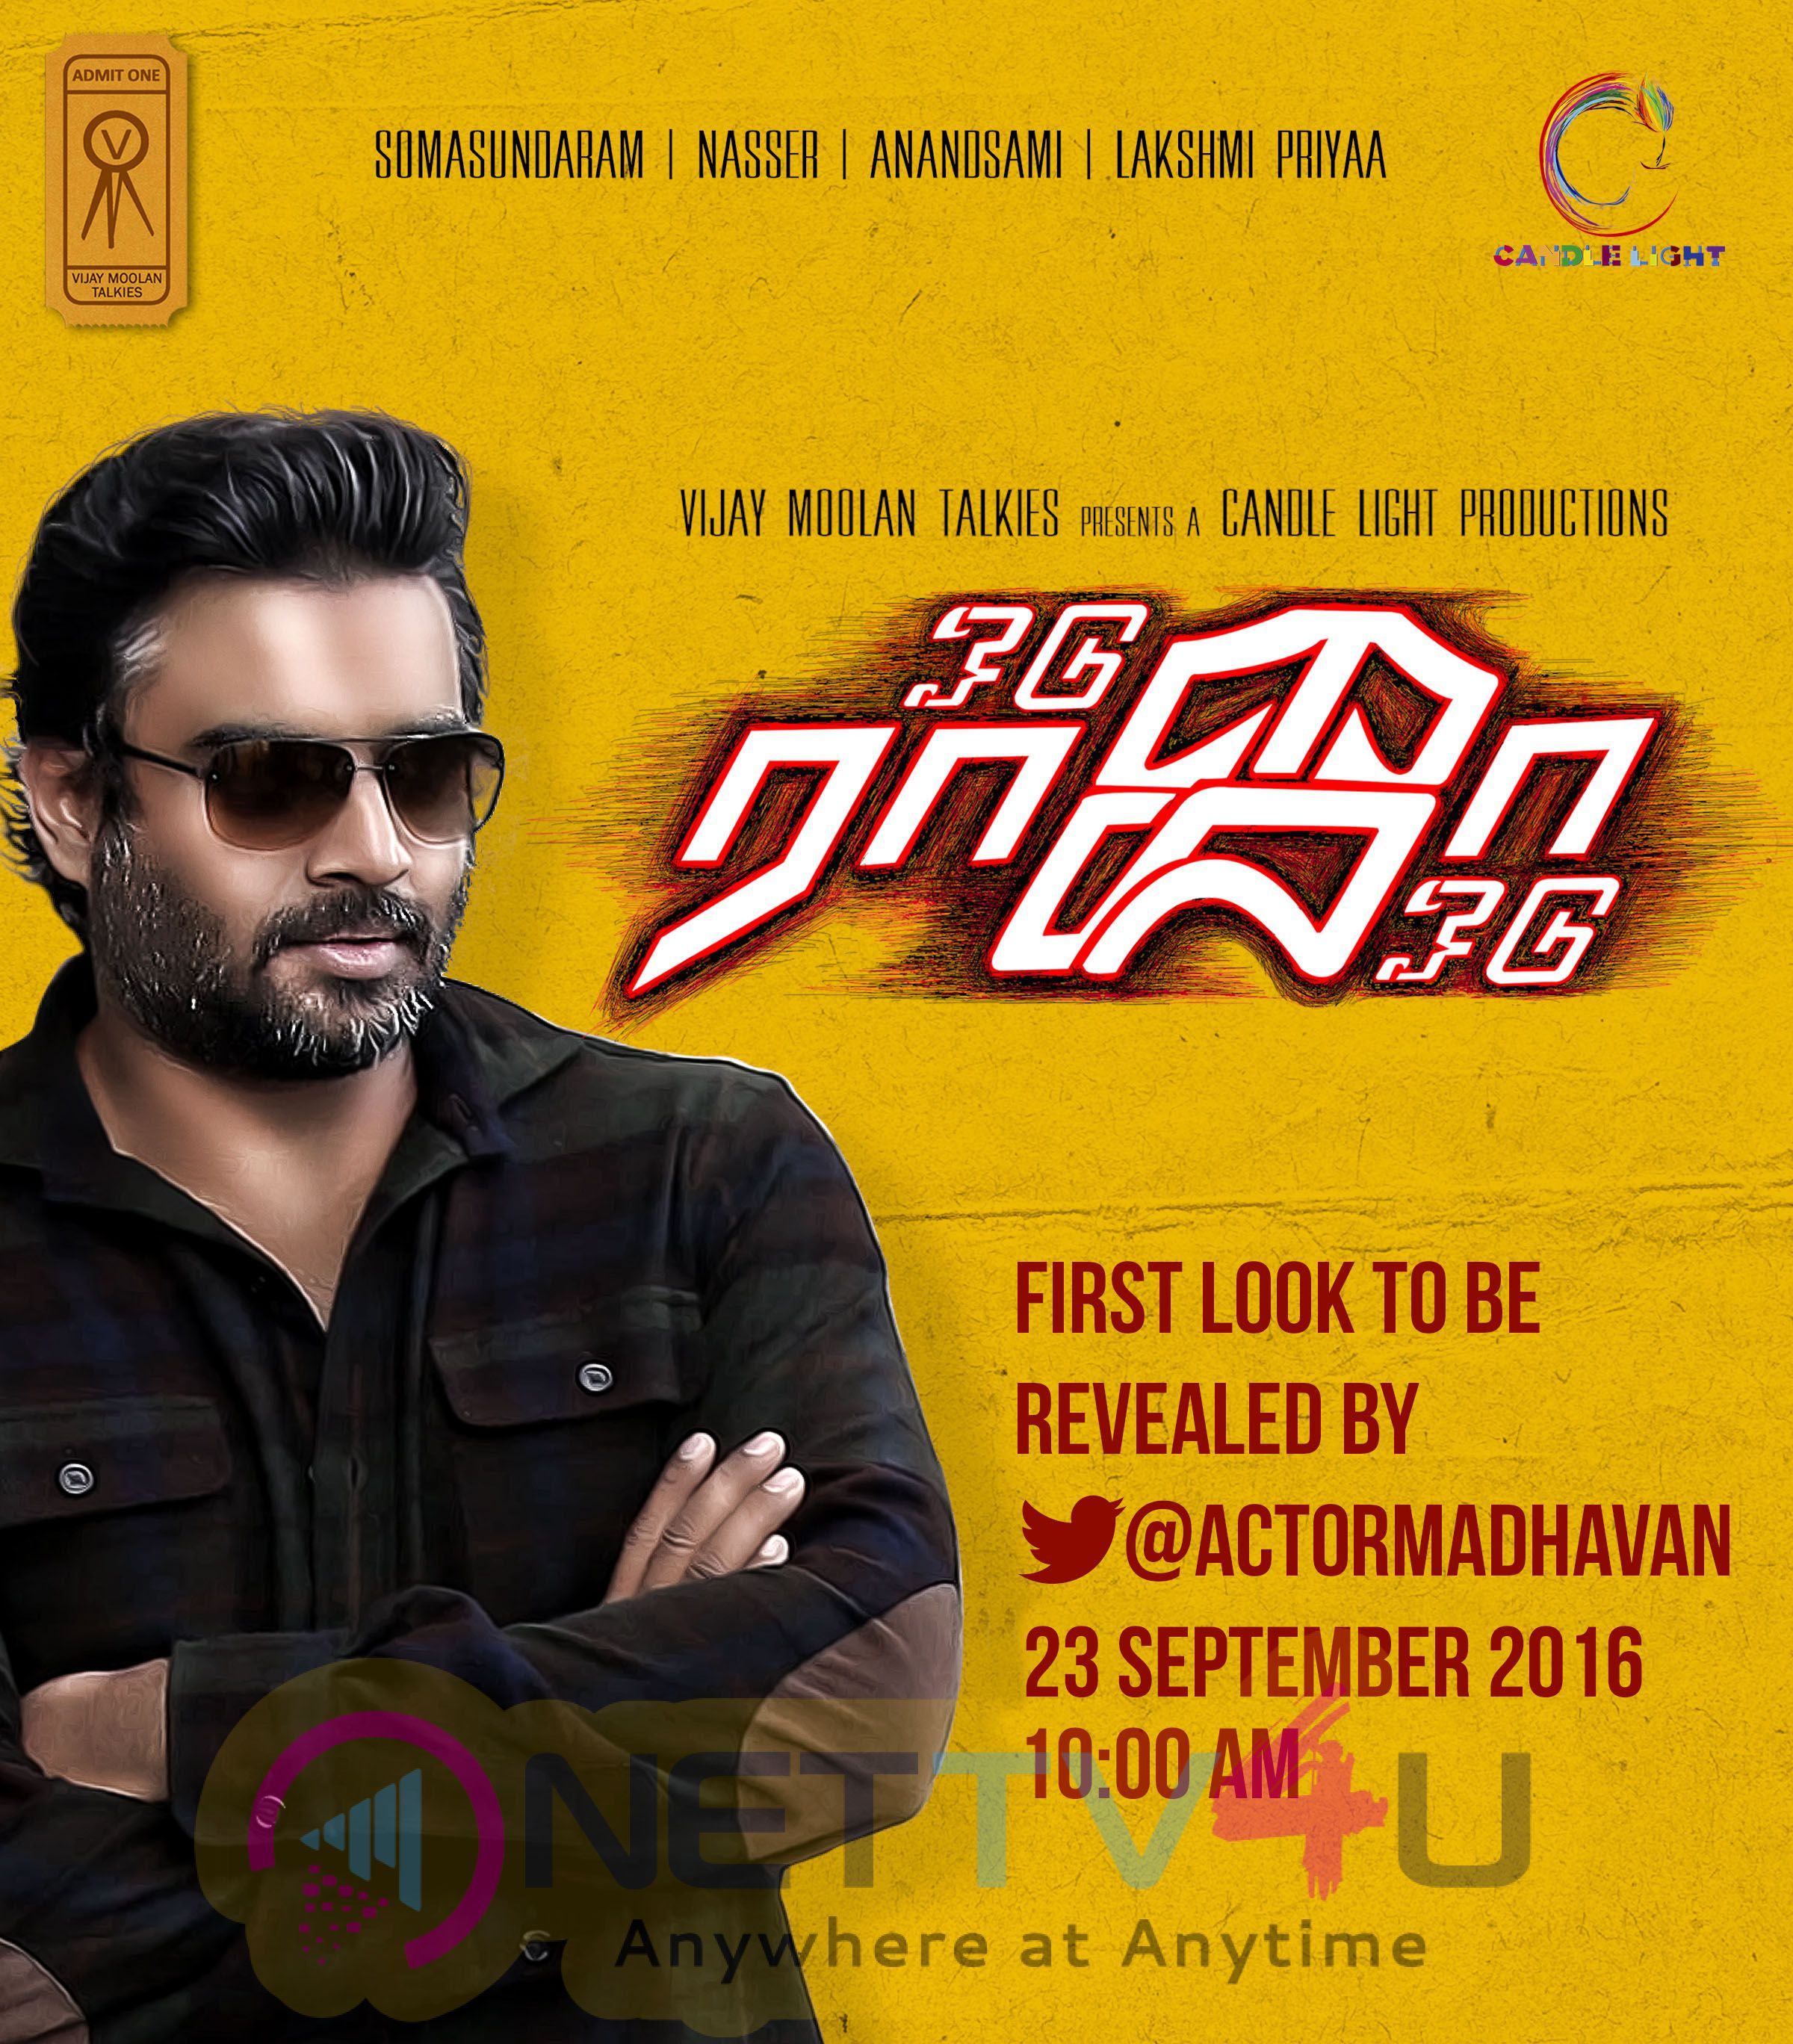 First Look Of Odu Raja Odu To Be Released On September 23rd By Actor Madhavan Poster